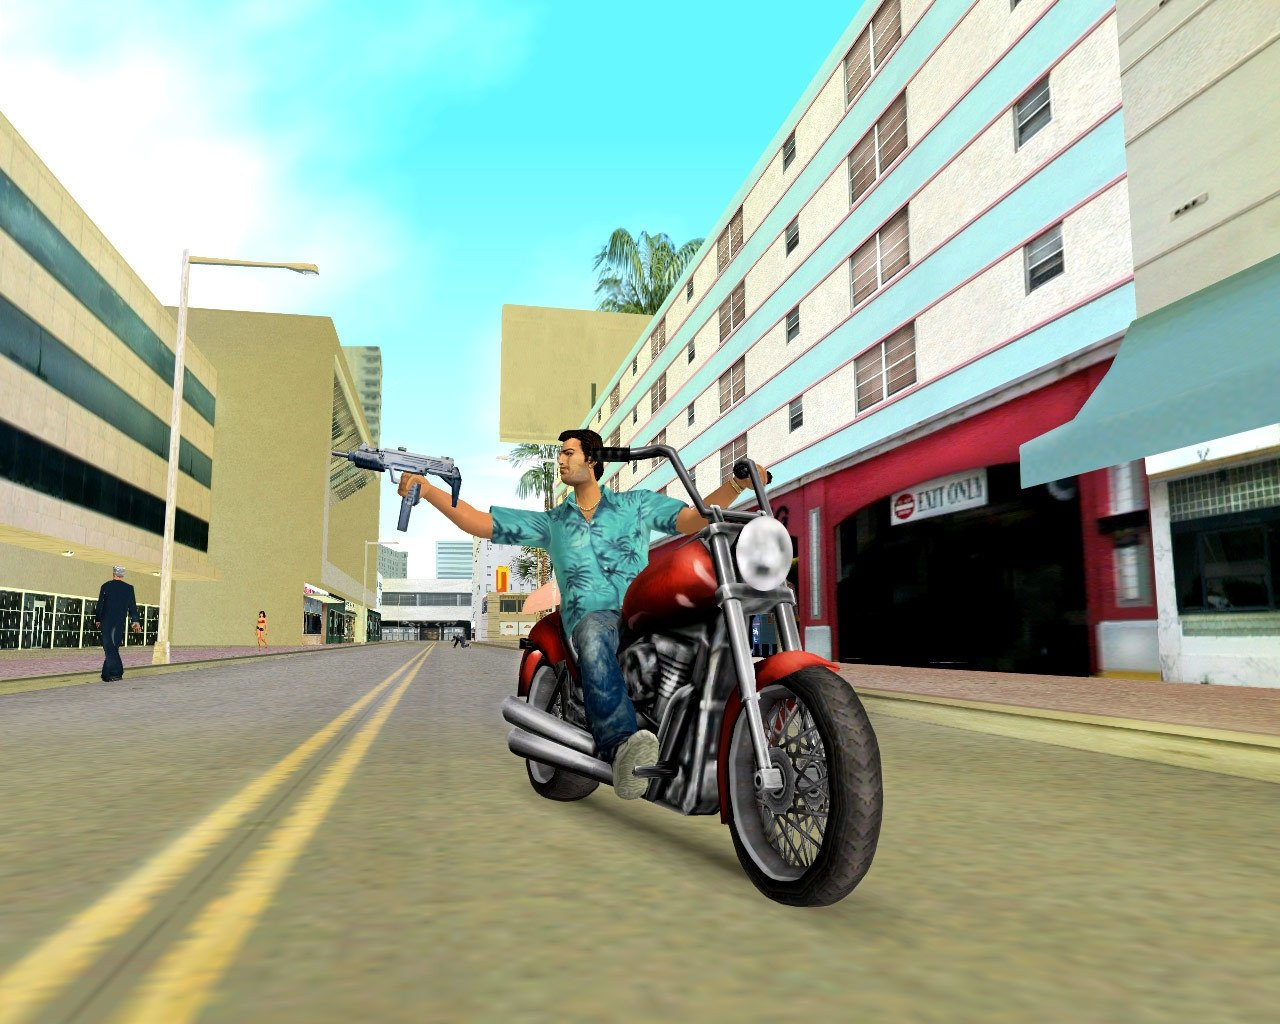 Gta Vice City Game - download.cnet.com